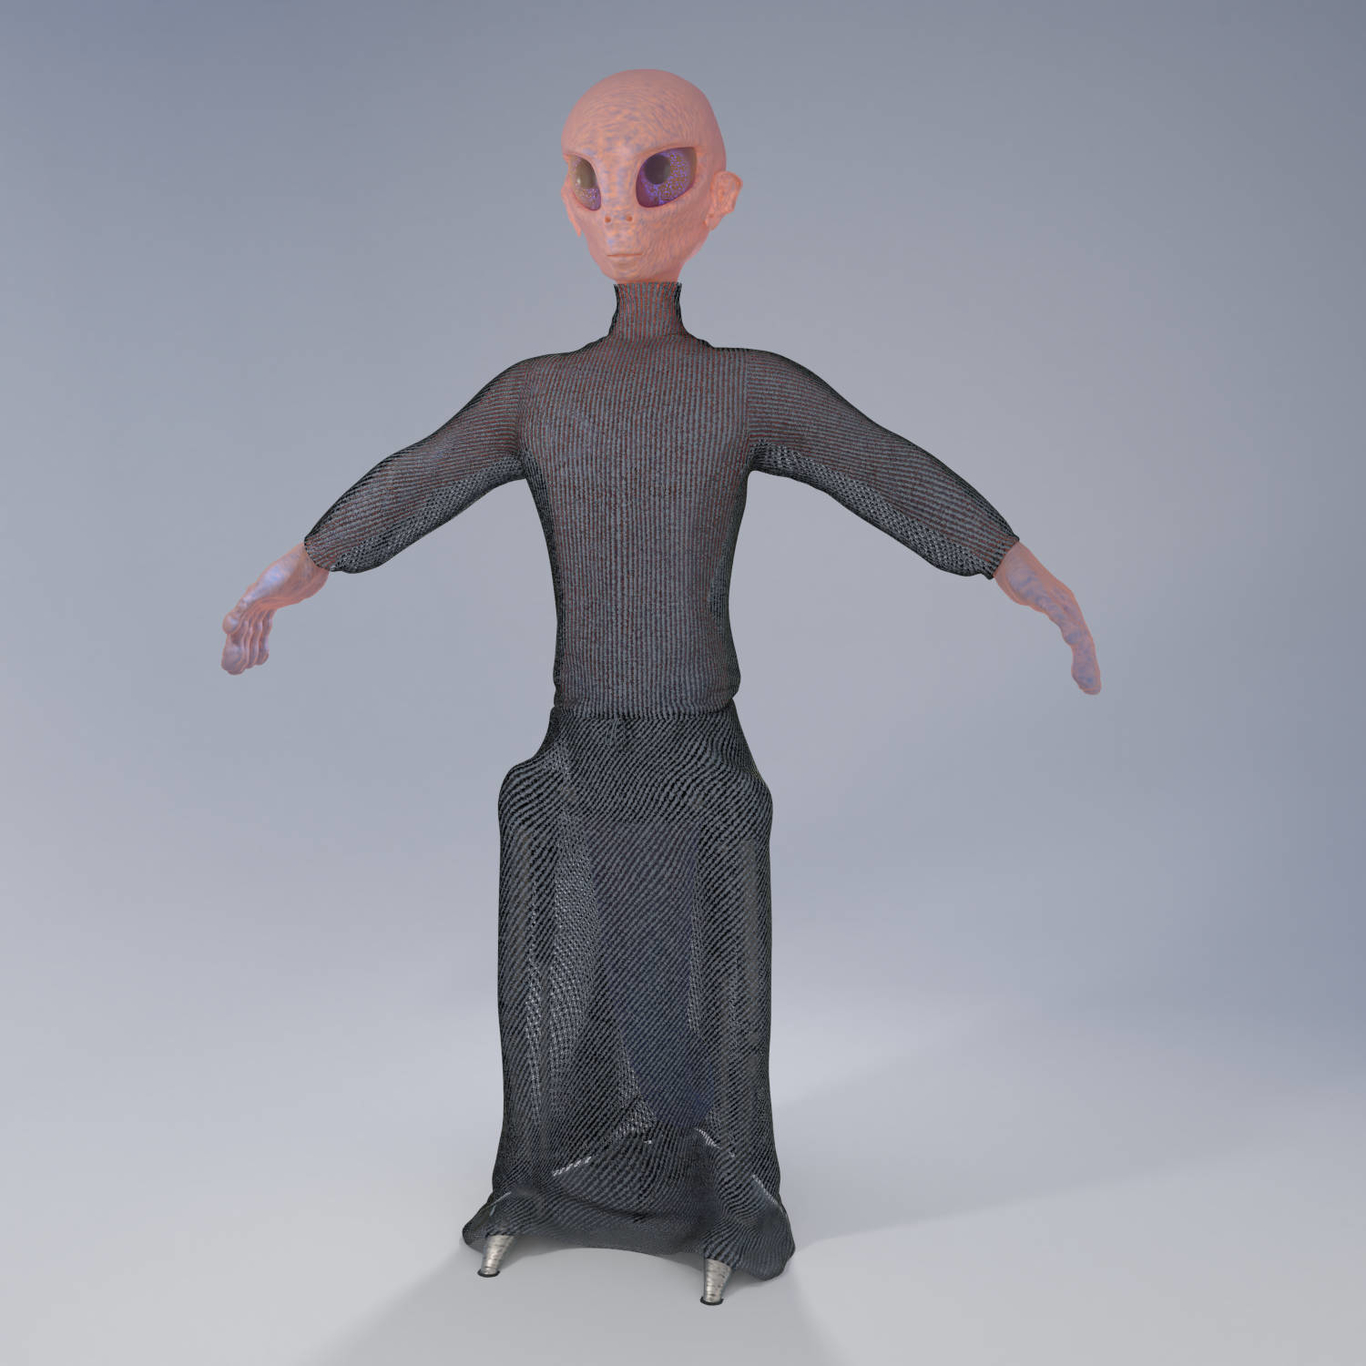 Tomtalented just another alien 1 b18bc8d0 4n2e